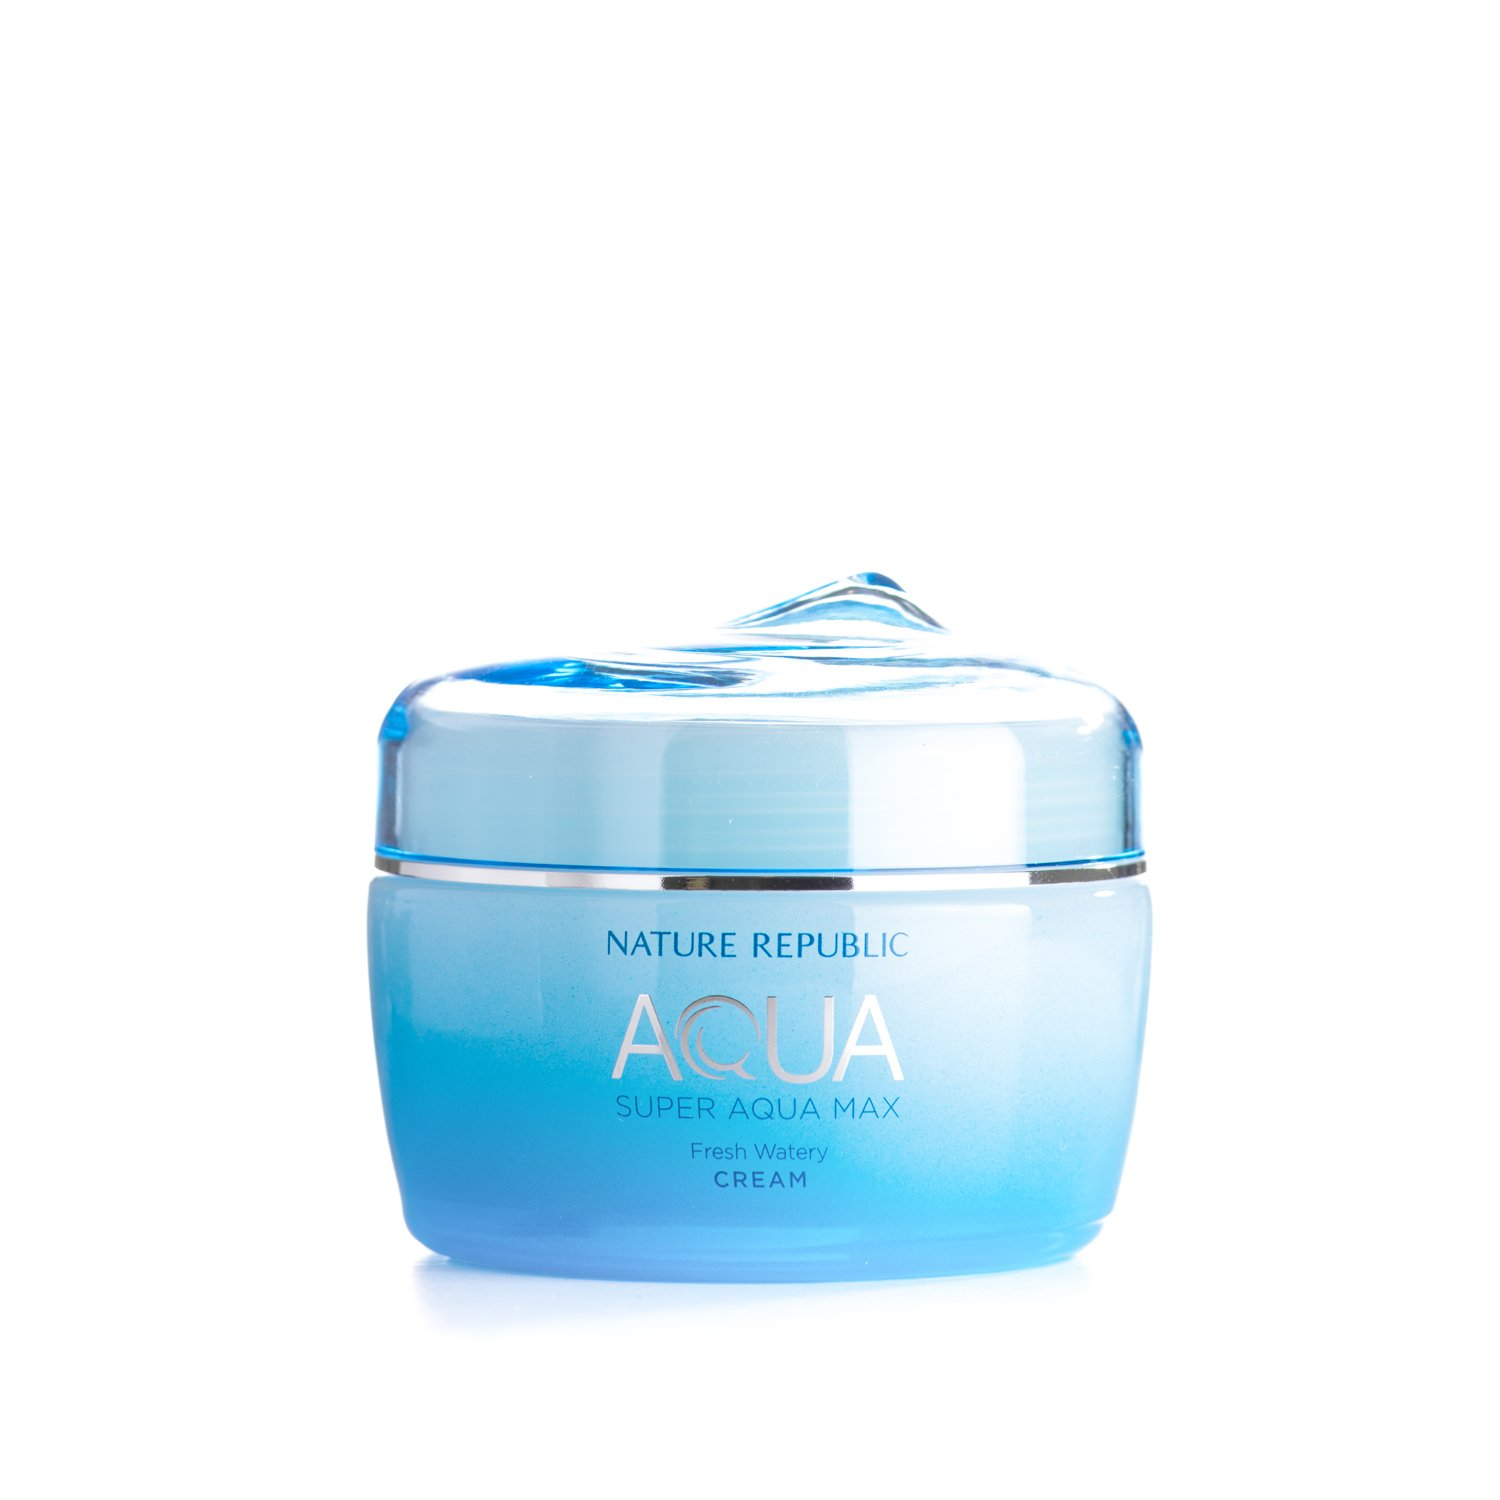 Nature Republic Super Aqua Max Fresh Watery Cream for Oily Skin, 80 Gram